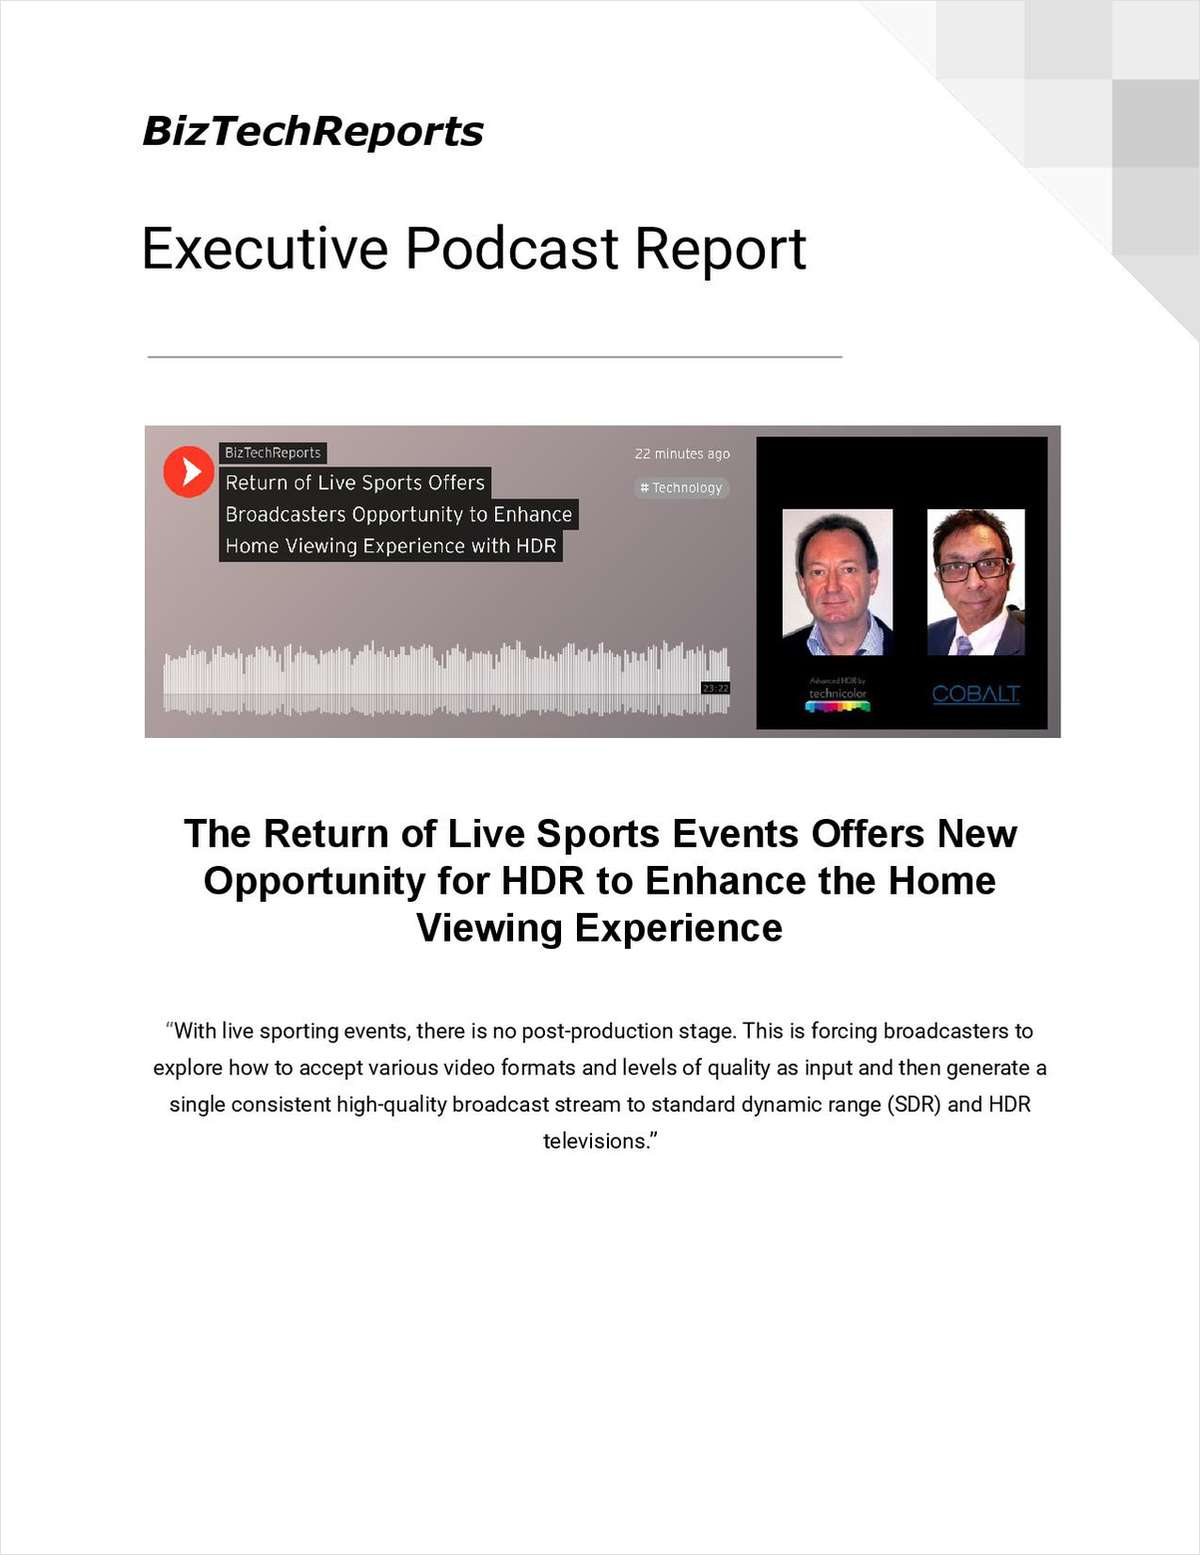 The Return of Live Sports Events Offers New Opportunity for HDR to Enhance the Home Viewing Experience